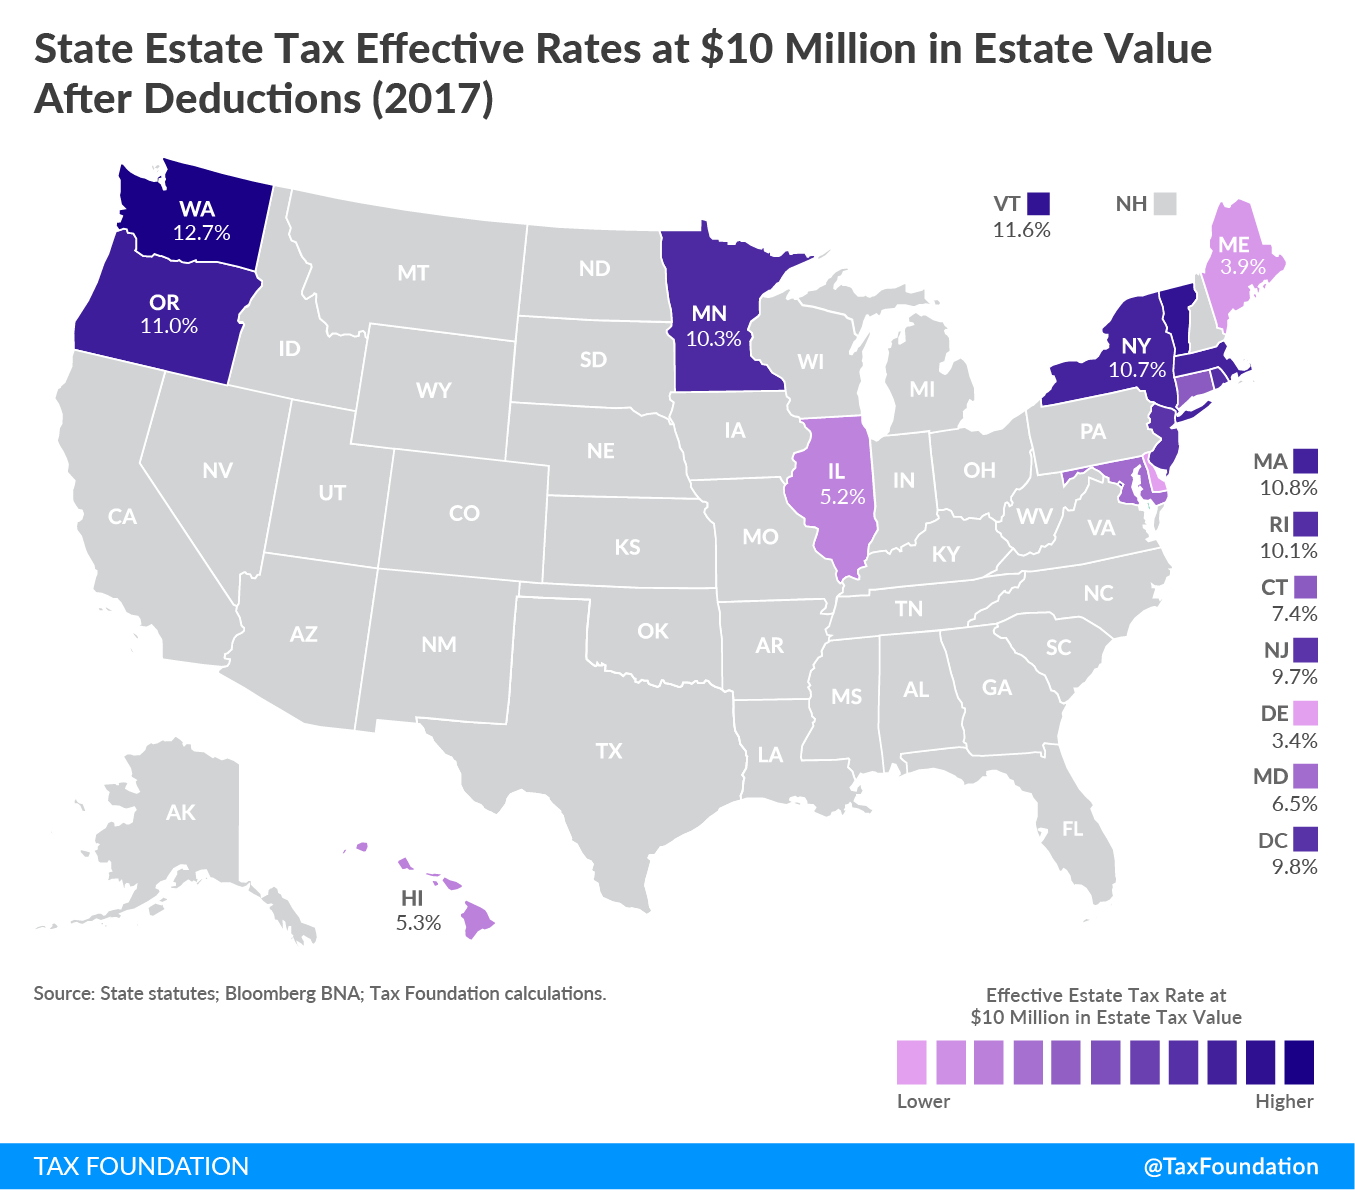 State Estate Tax Rates